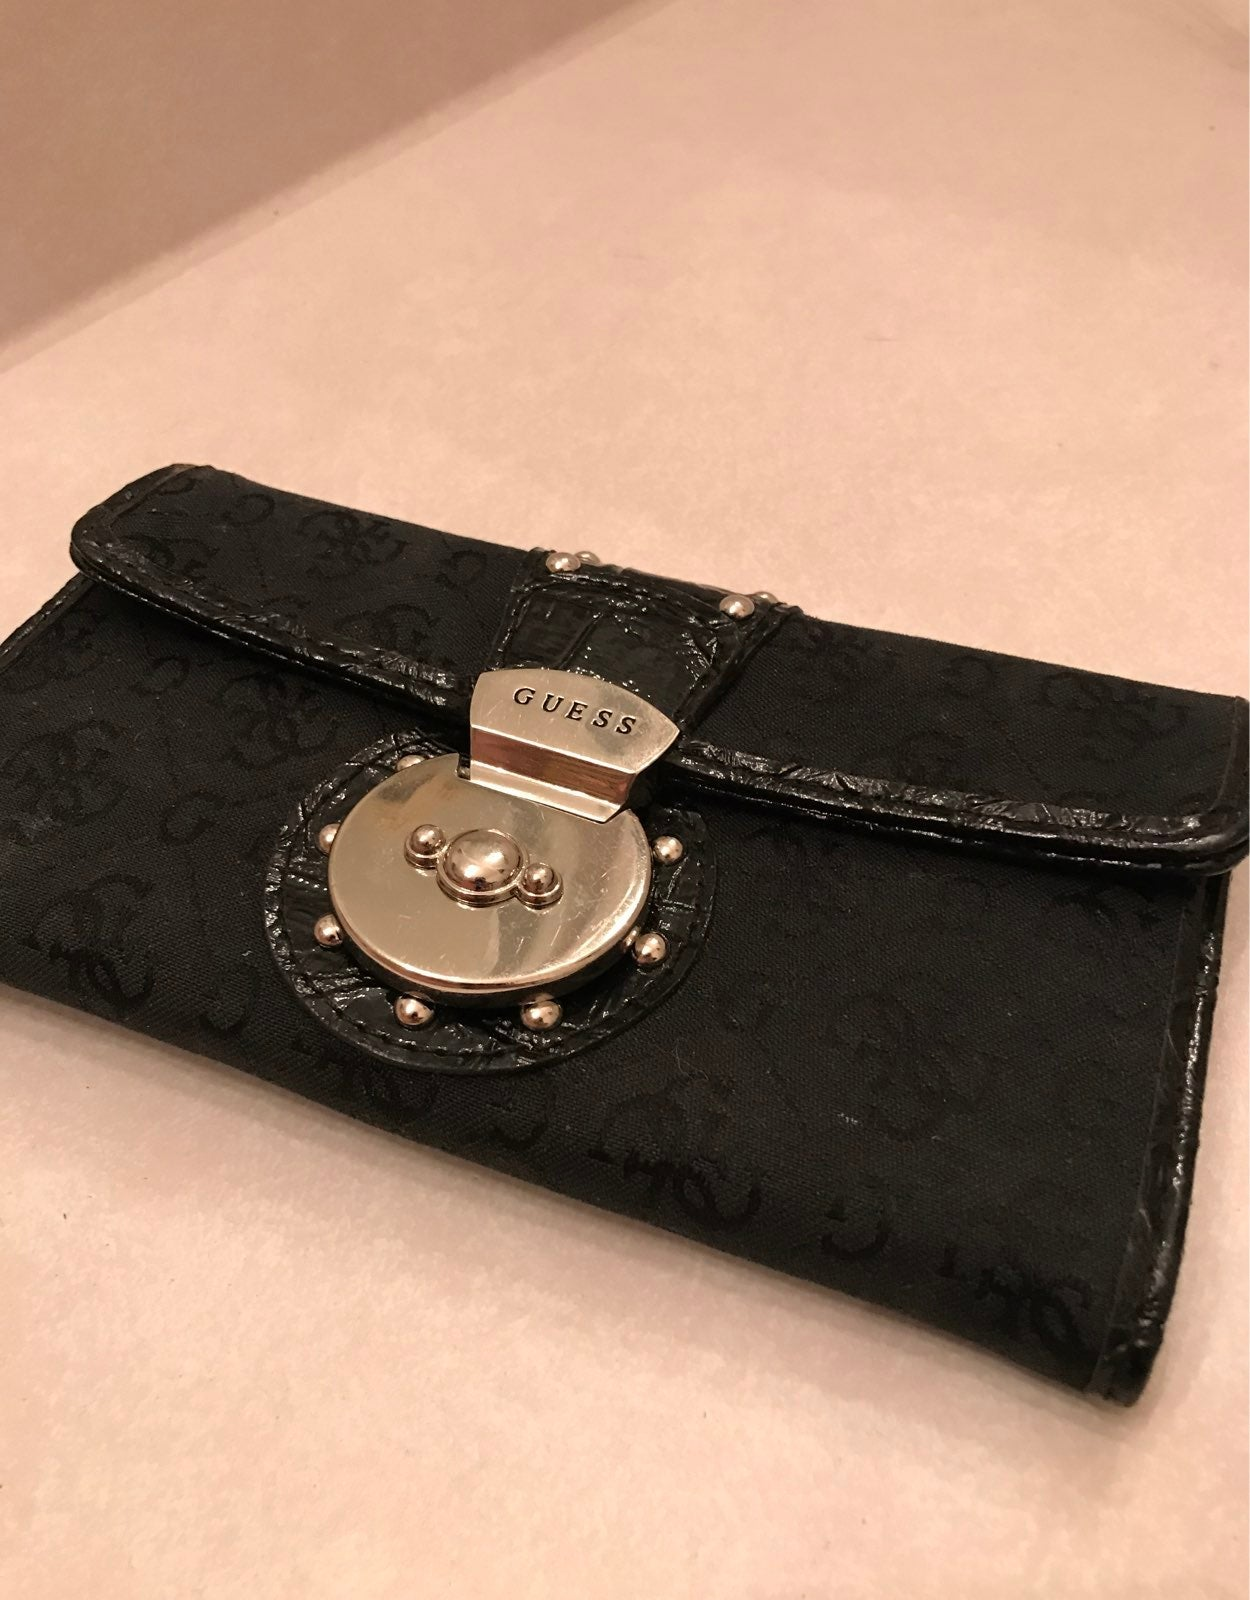 Genuine Guess Womens Wallet